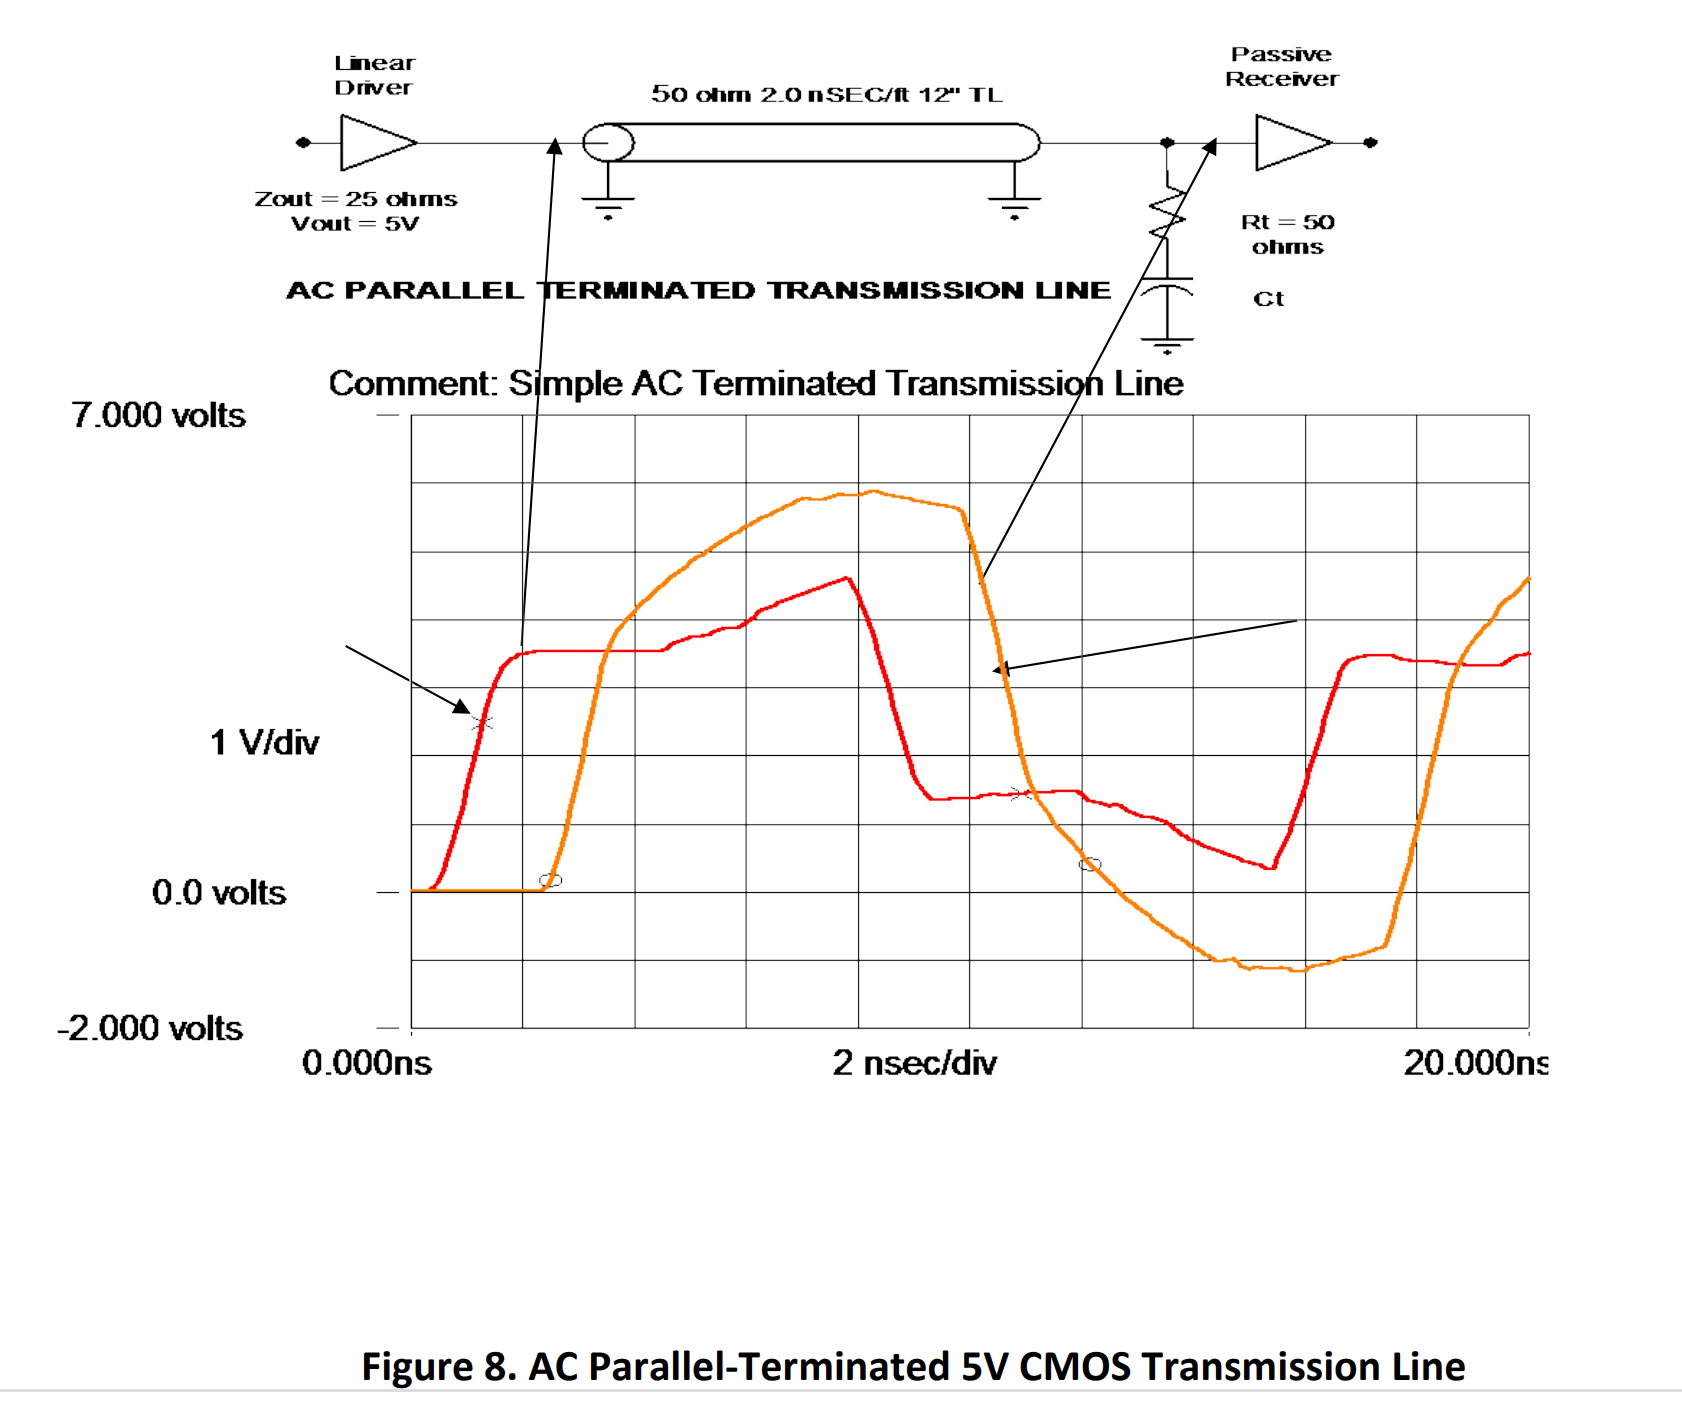 AC Parallel-Terminated 5V CMOS Transmission Line